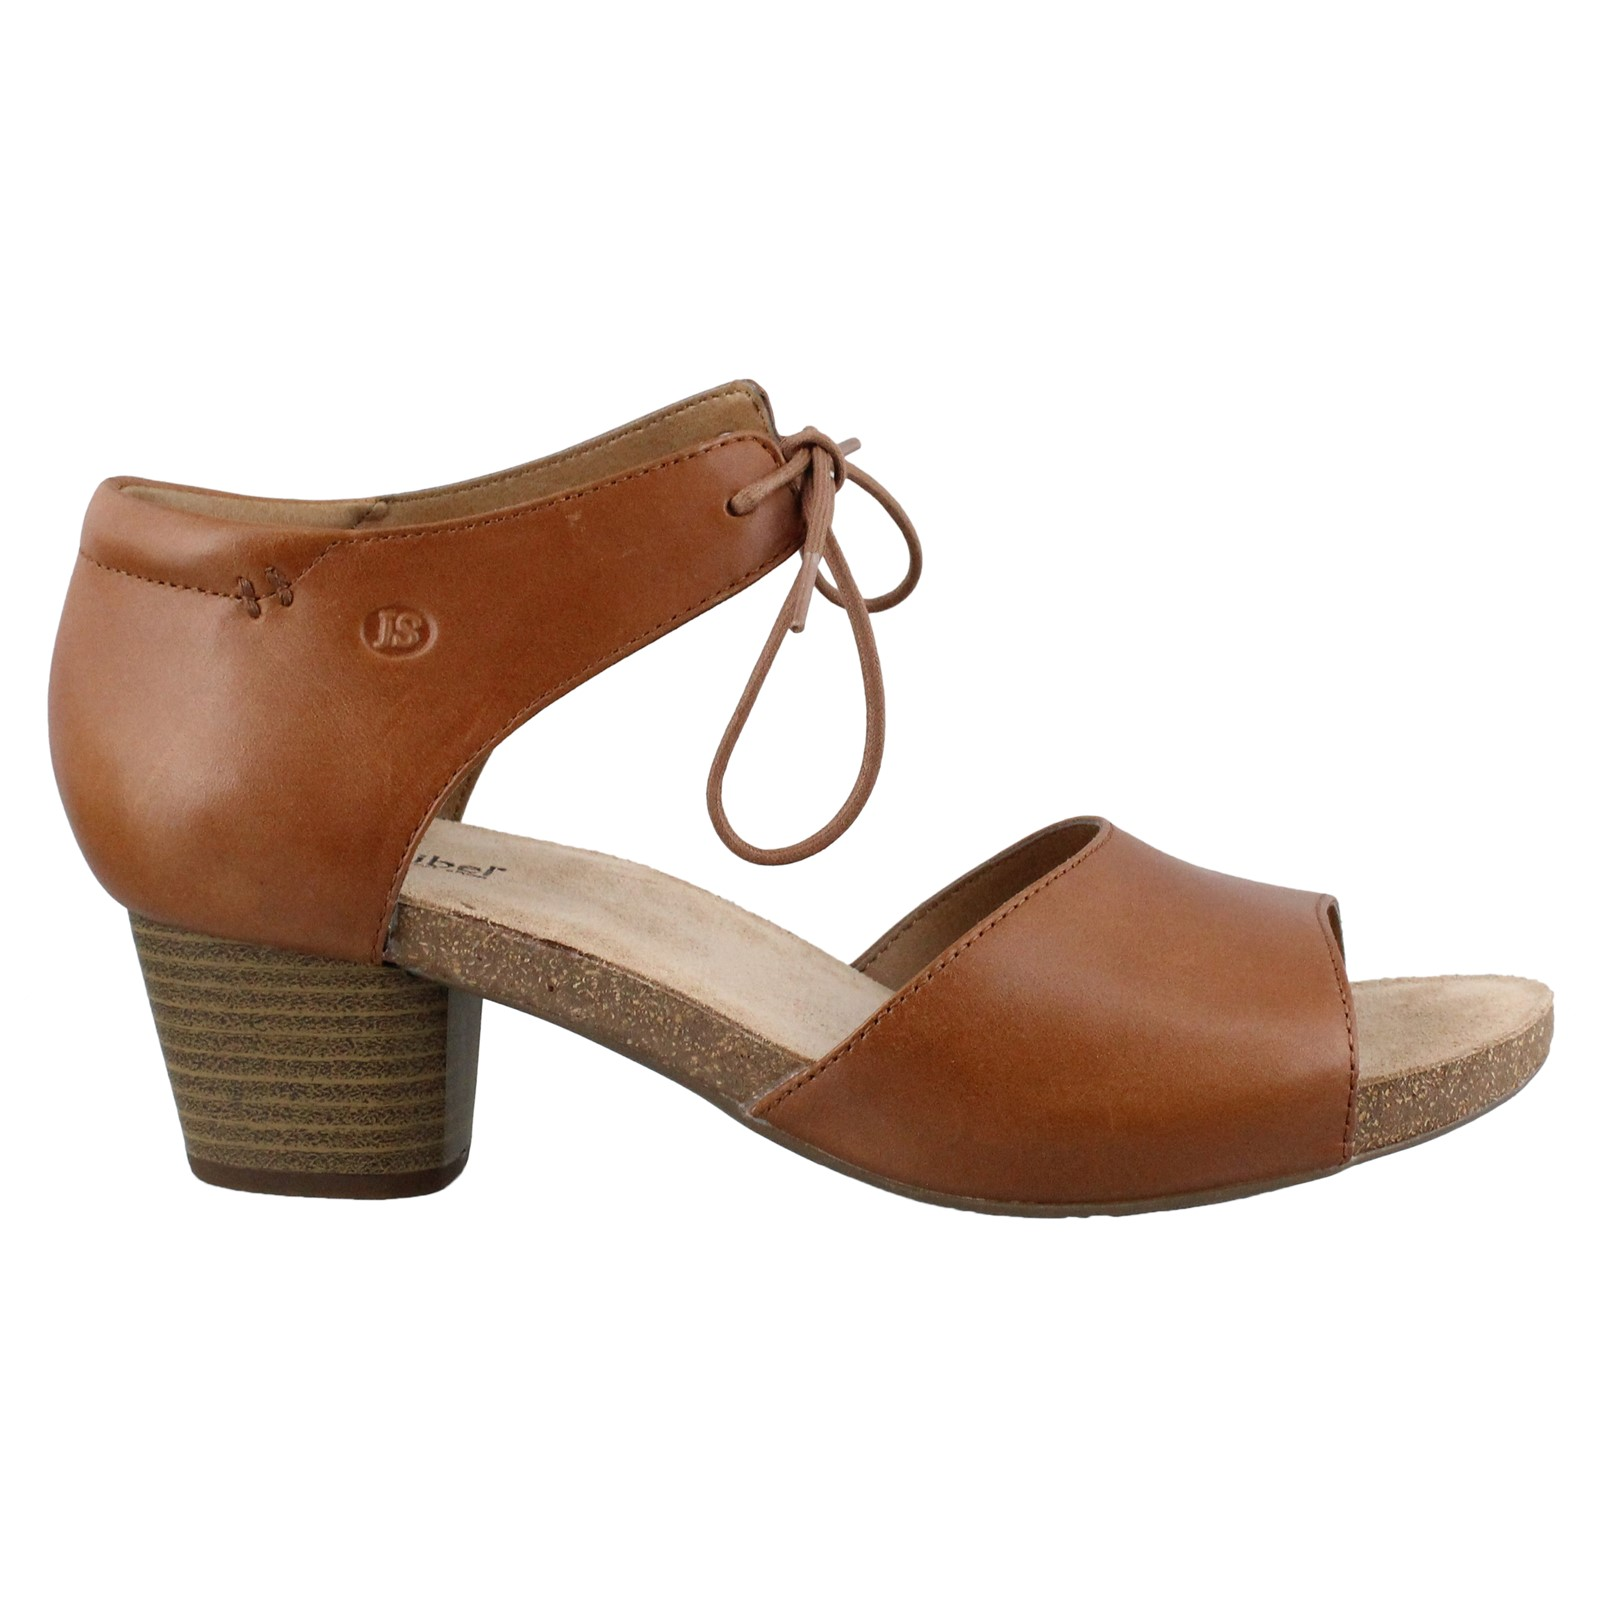 Josef Seibel, Rose 23 Sandals